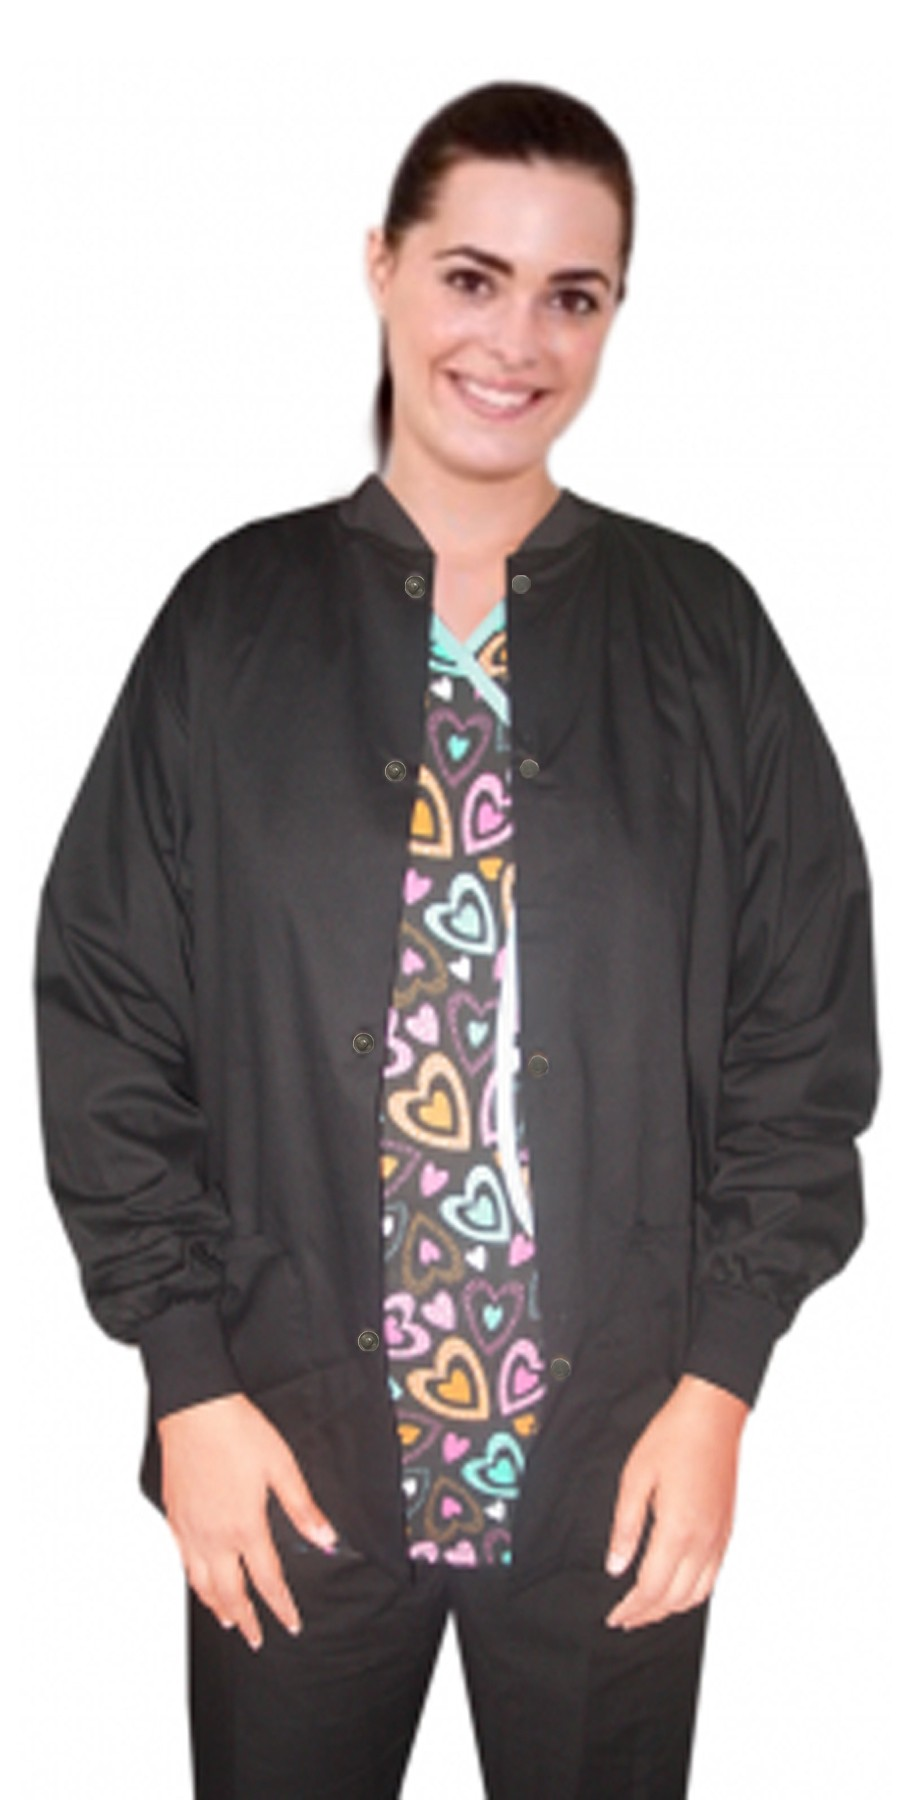 Jacket 2 pocket solid unisex full sleeve with rib at neck and sleeves with snap button